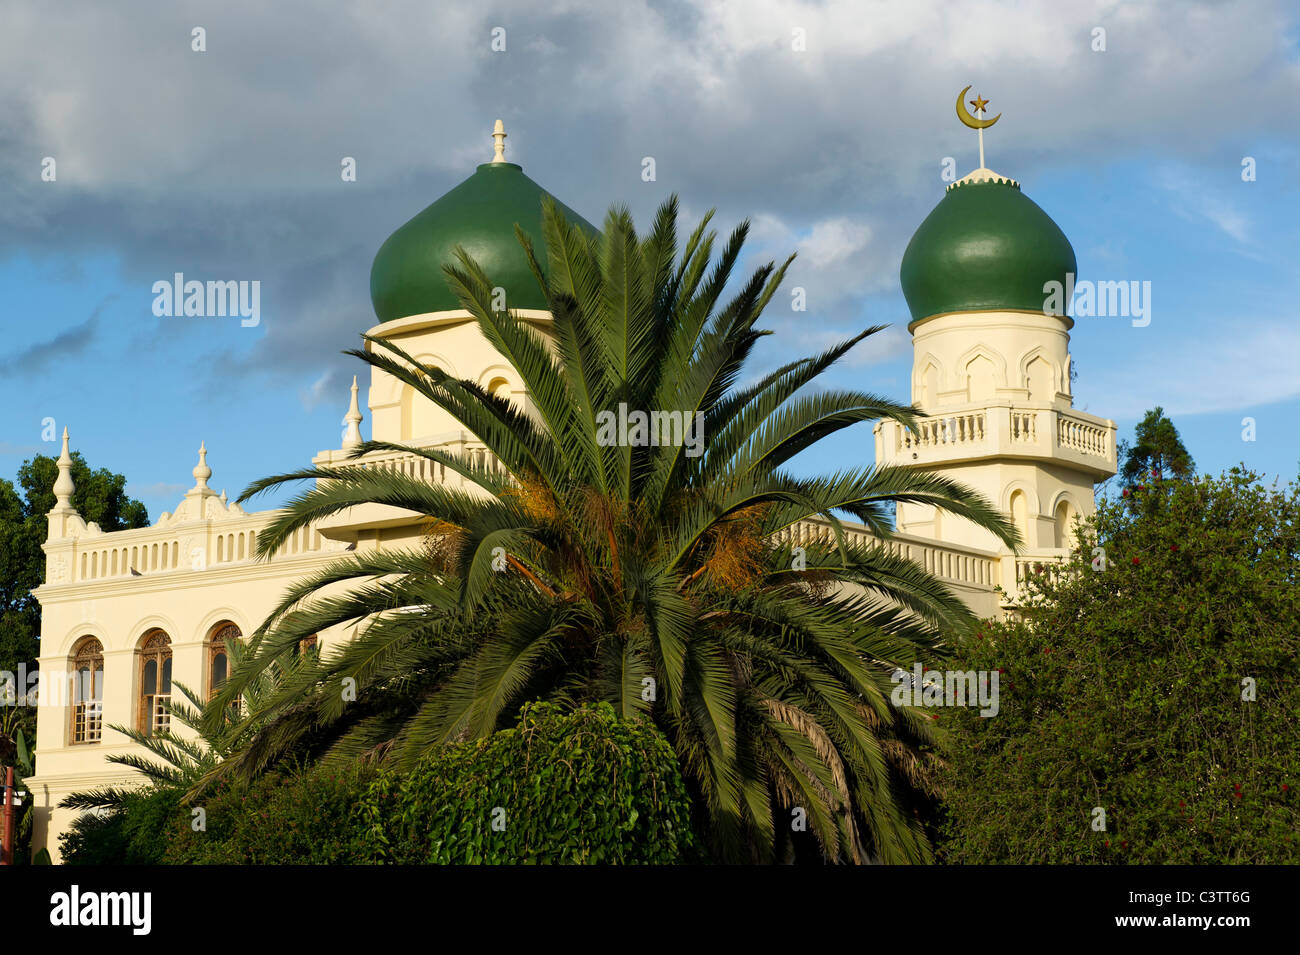 Mosque, Dundee, South Africa - Stock Image